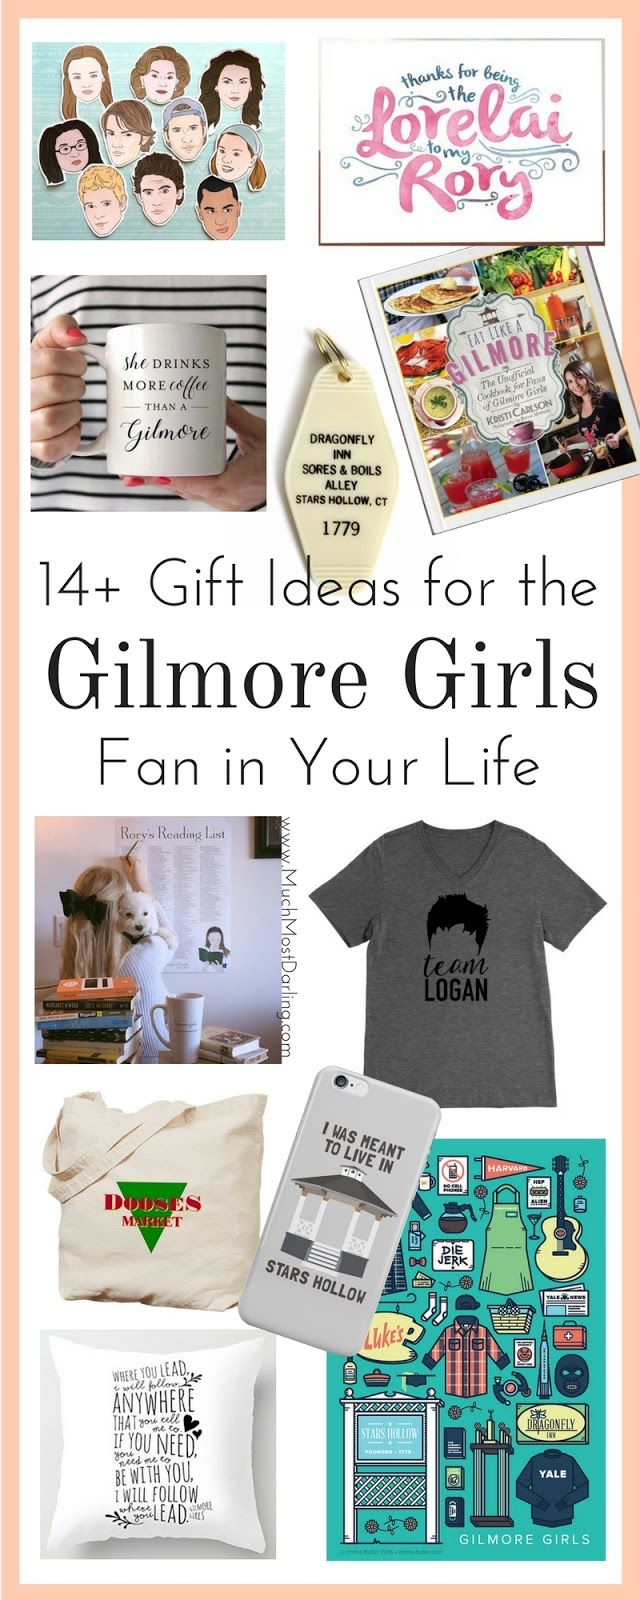 The Gilmore Girls are back! More than 14 of the best Gilmore Girls themed gifts for the Stars Hollow addict in your life.